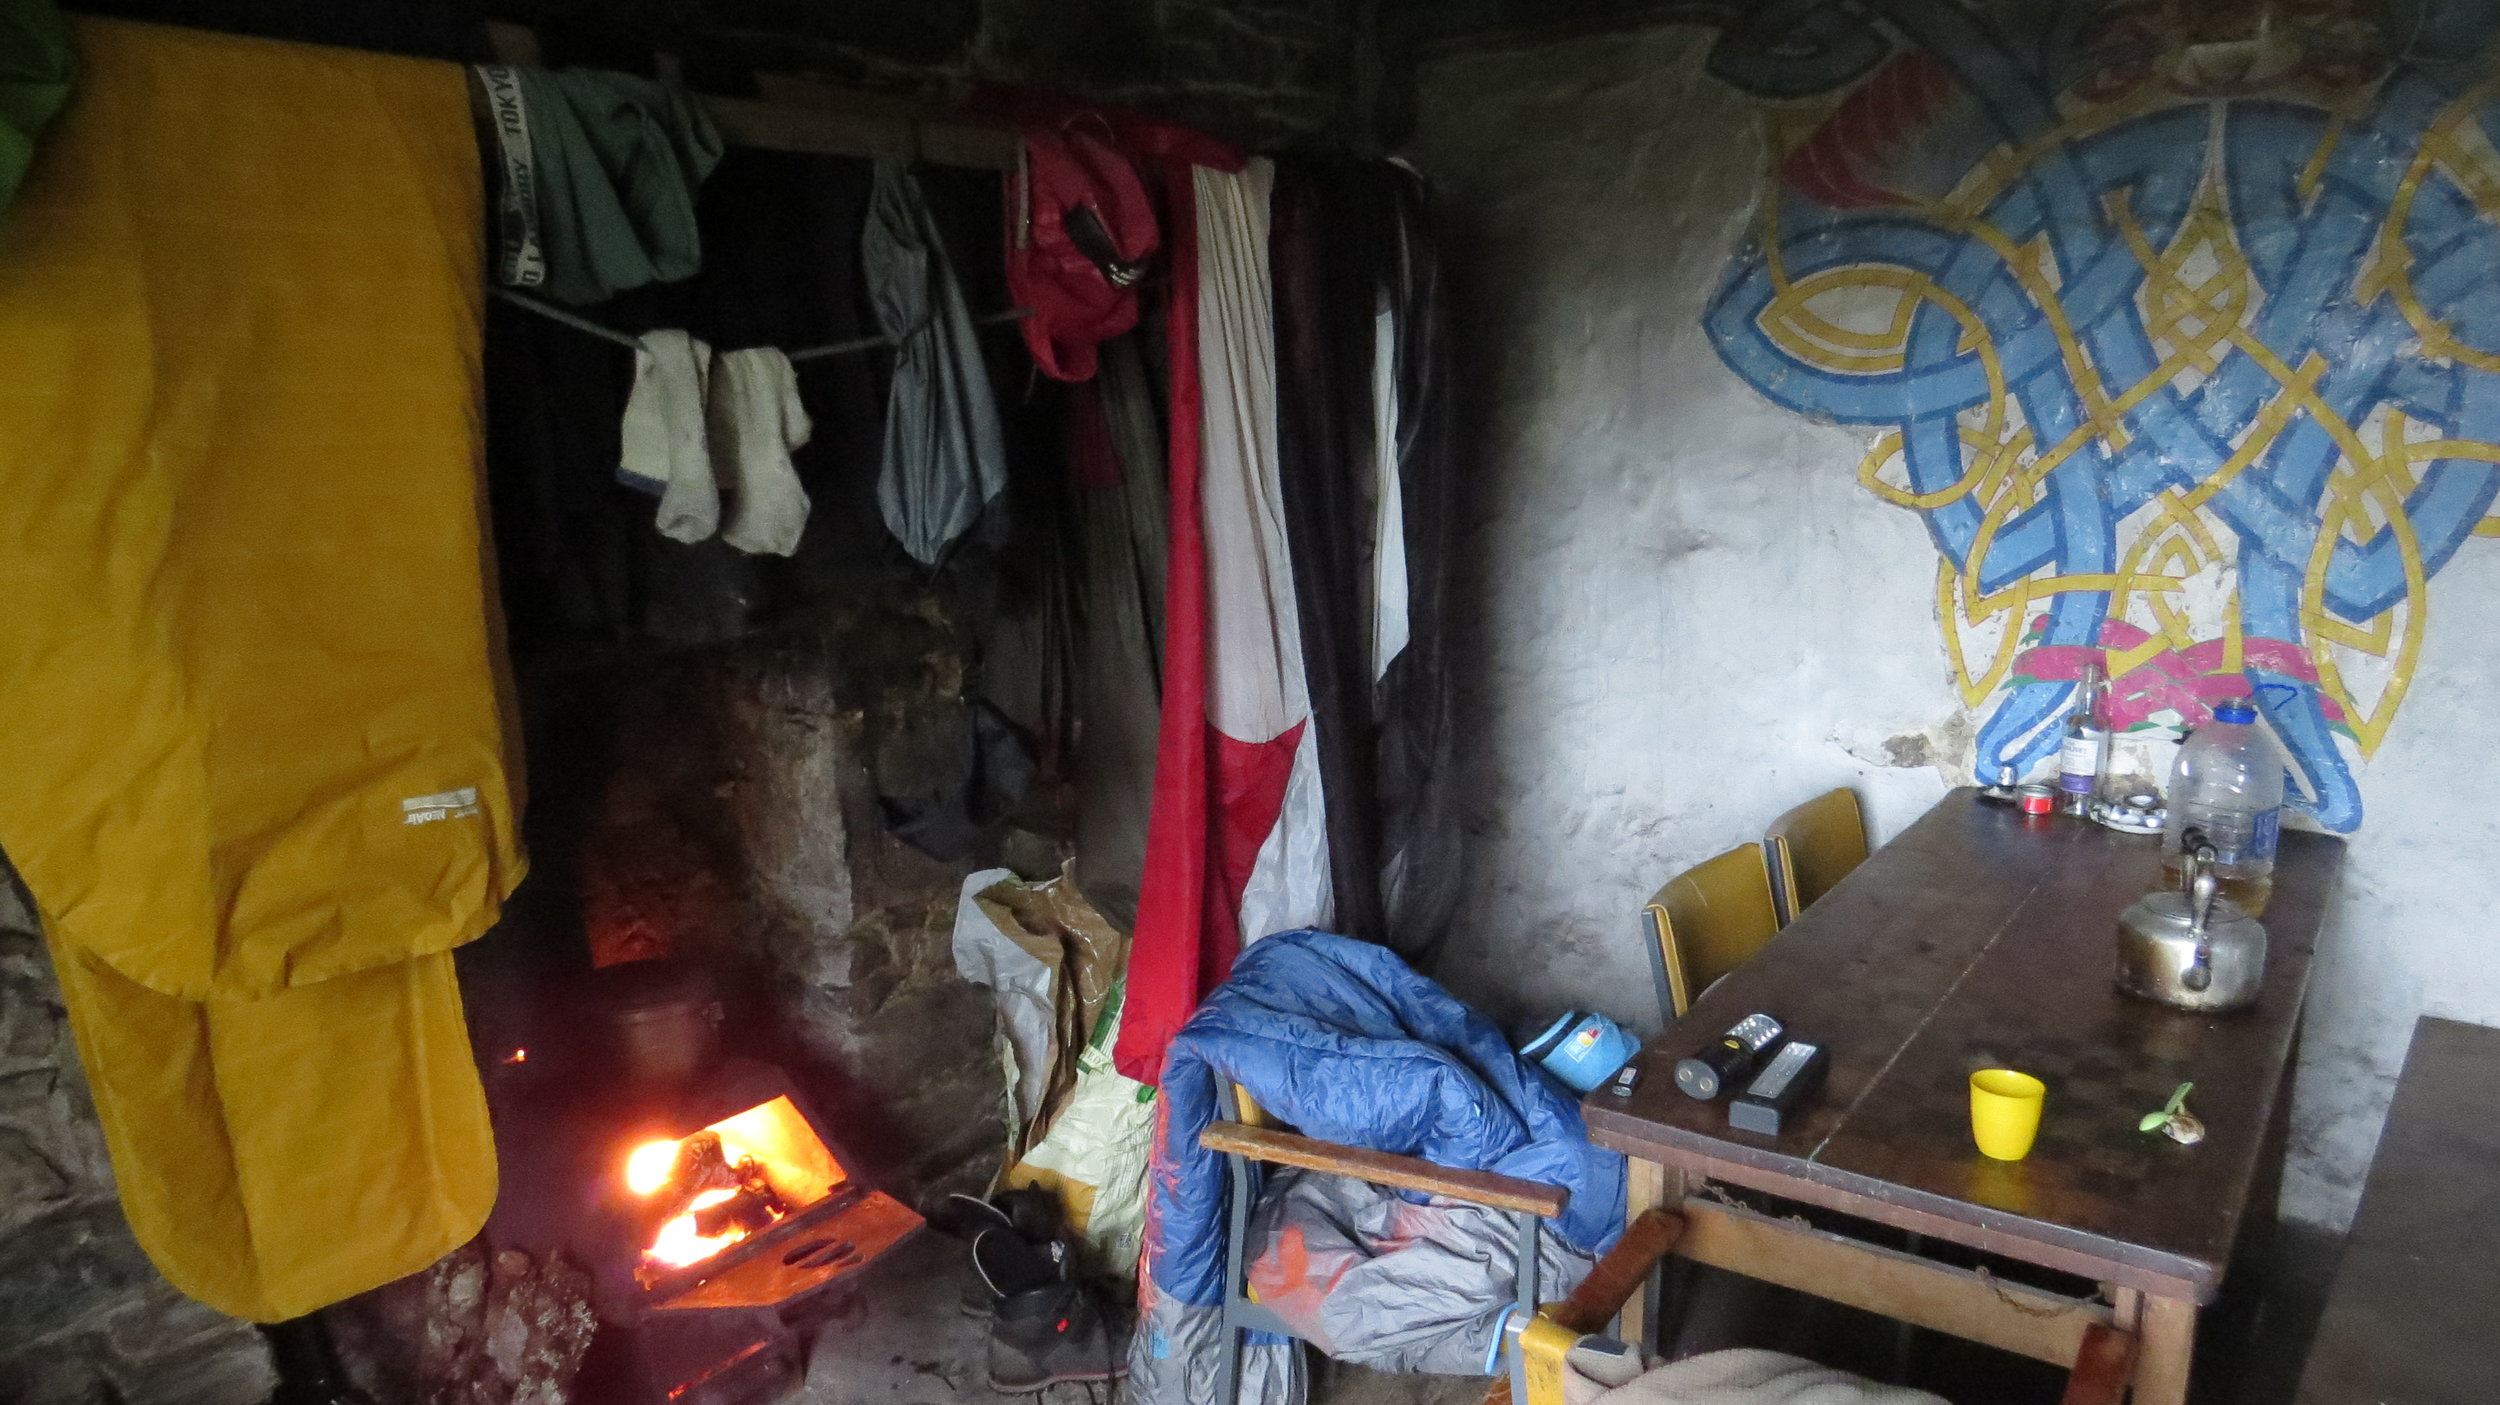 Drying stuff above Fire in Bothy